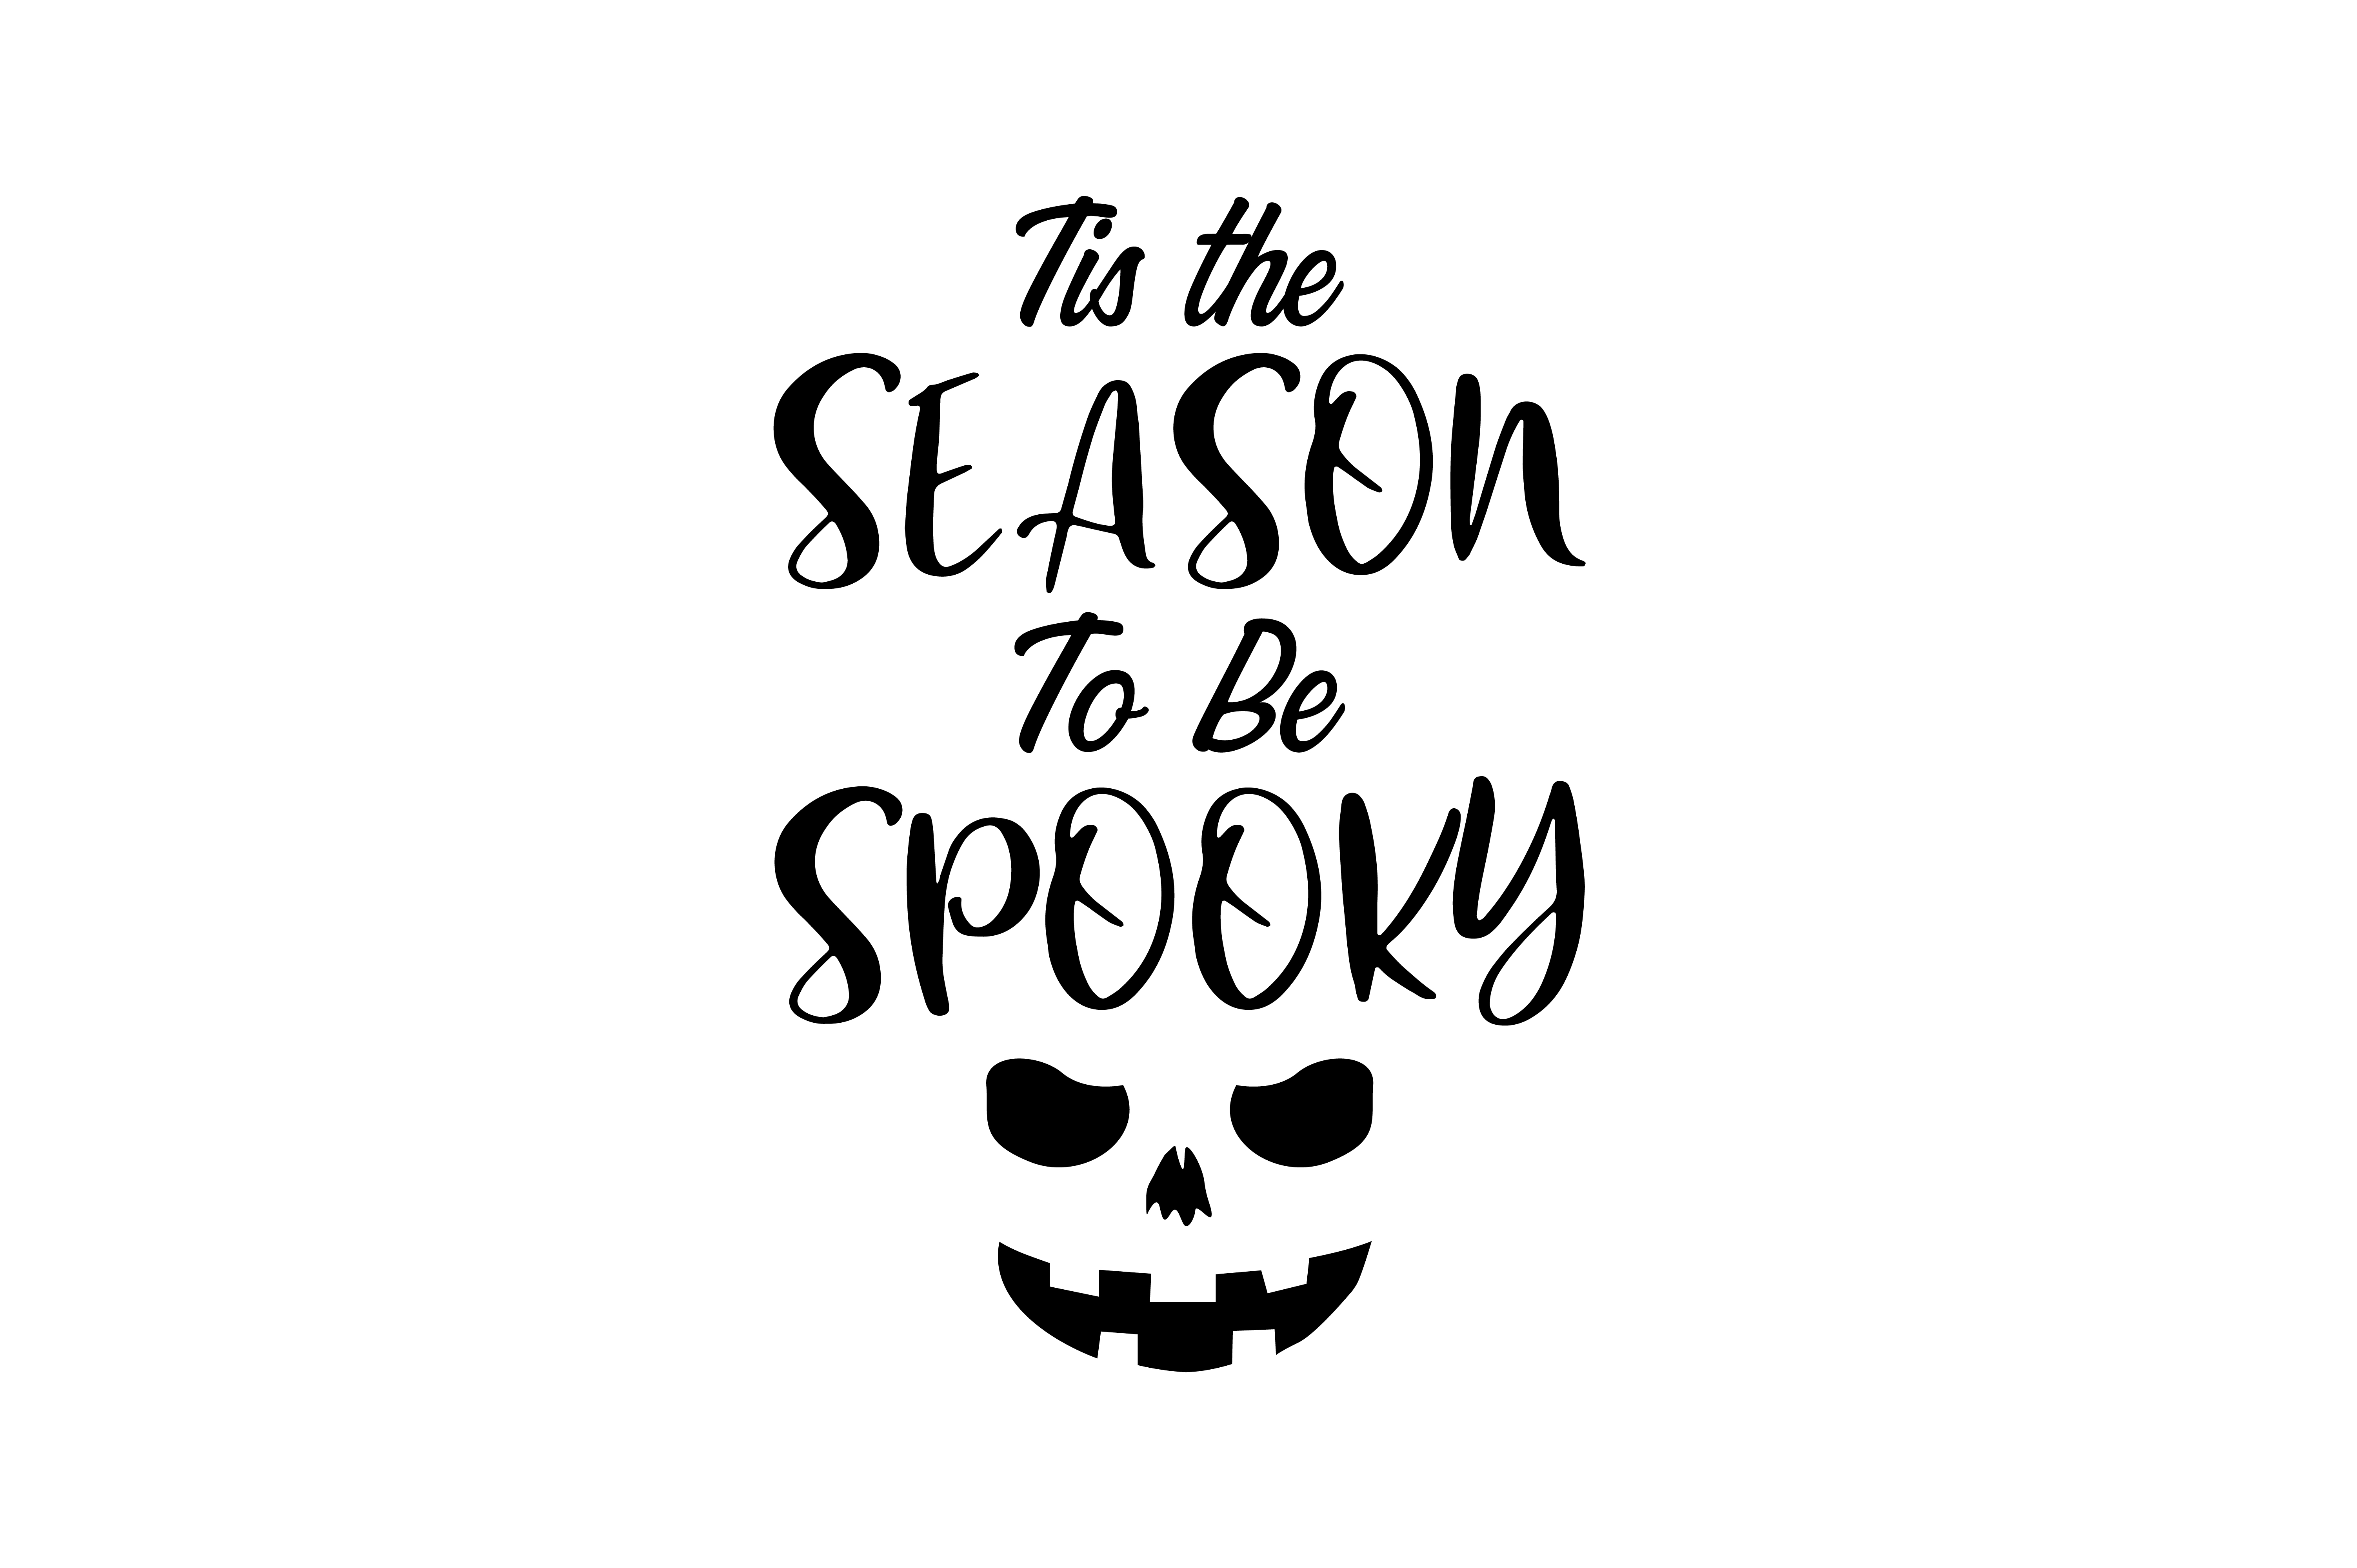 Download Free Tis The Season To Be Spooky Graphic By Thelucky Creative Fabrica for Cricut Explore, Silhouette and other cutting machines.